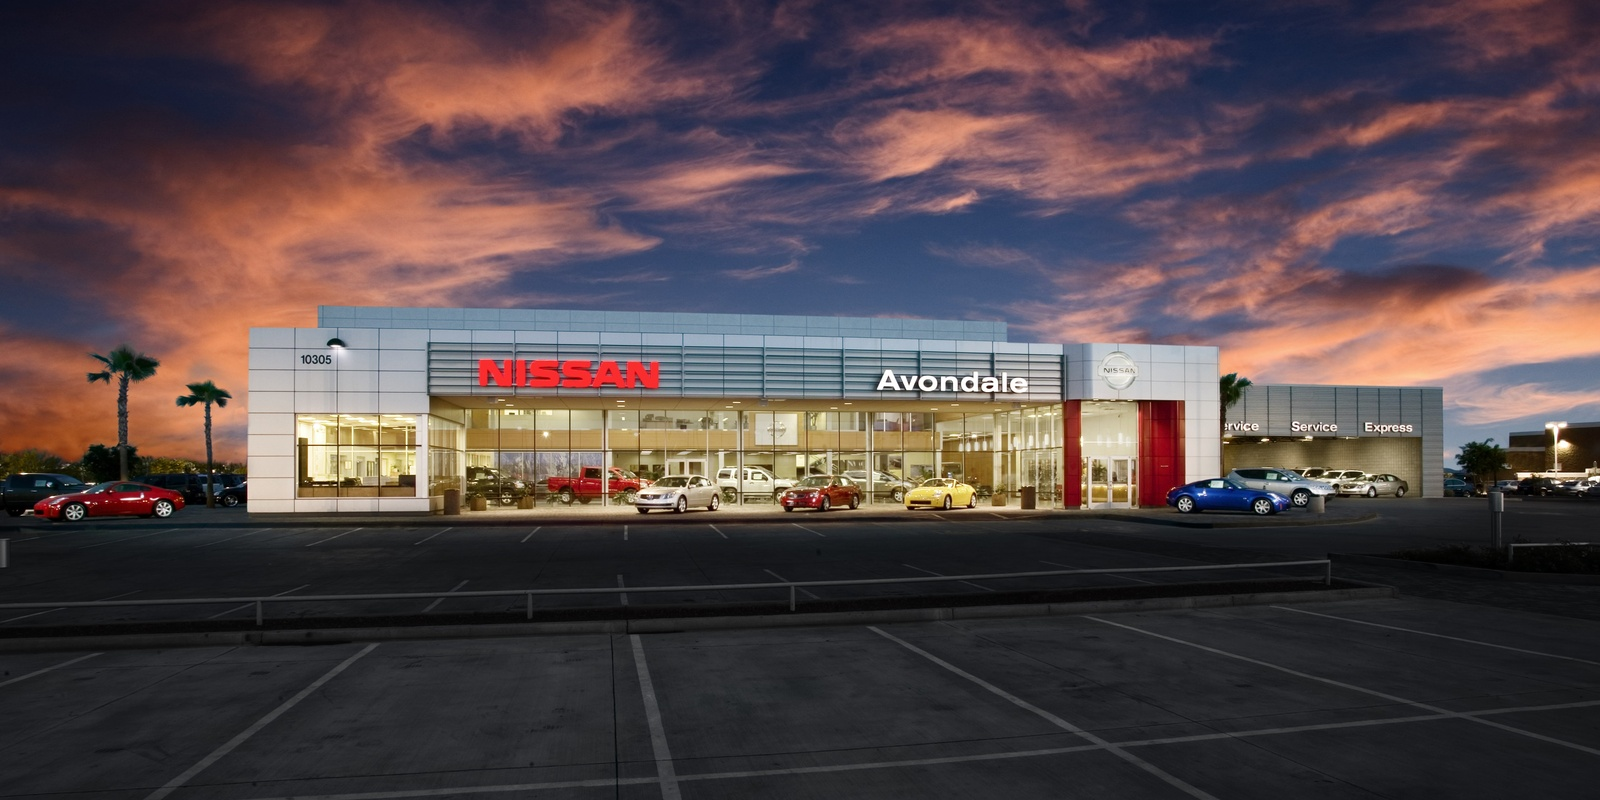 Avondale Nissan - Avondale, AZ: Read Consumer reviews, Browse Used and New Cars for Sale